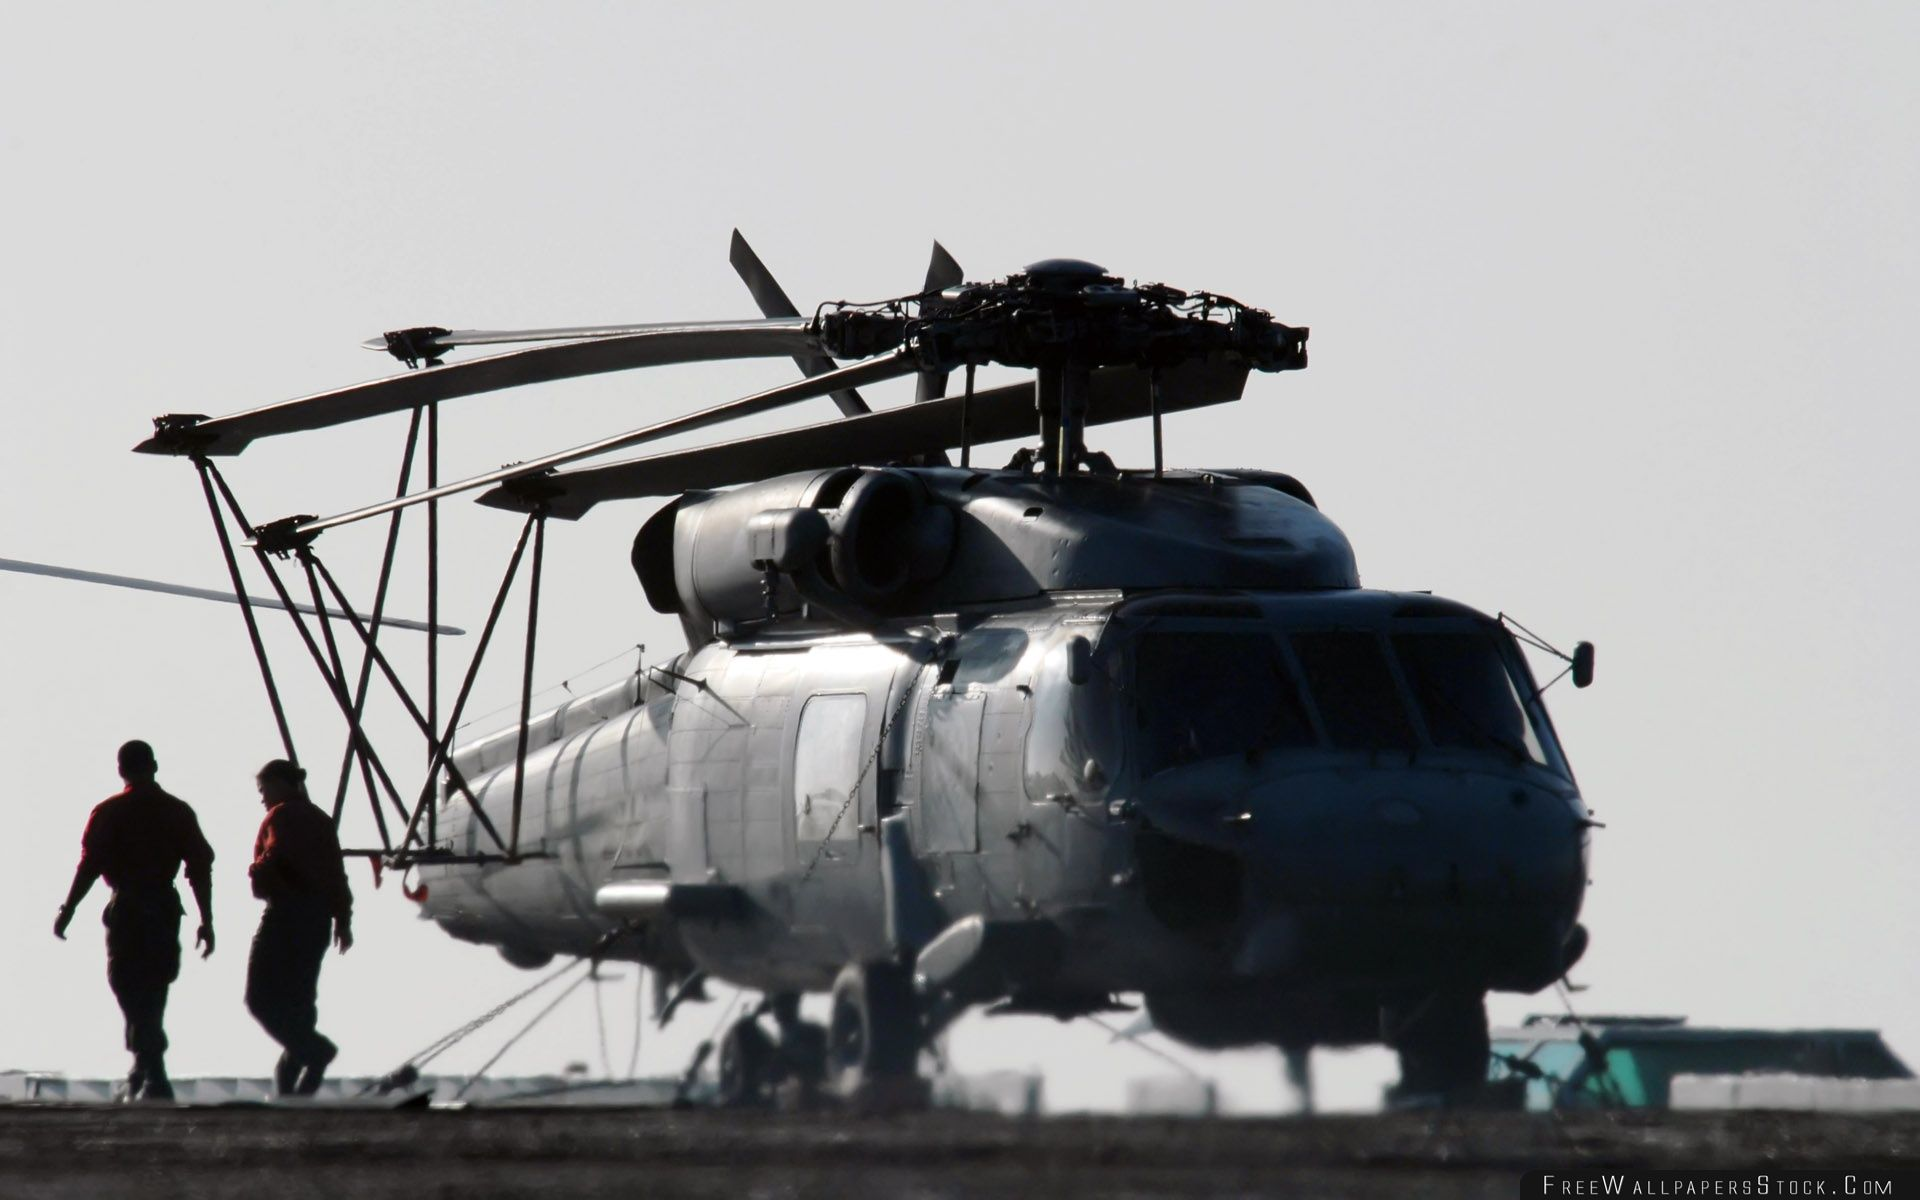 Download Free Wallpaper War Helicopters